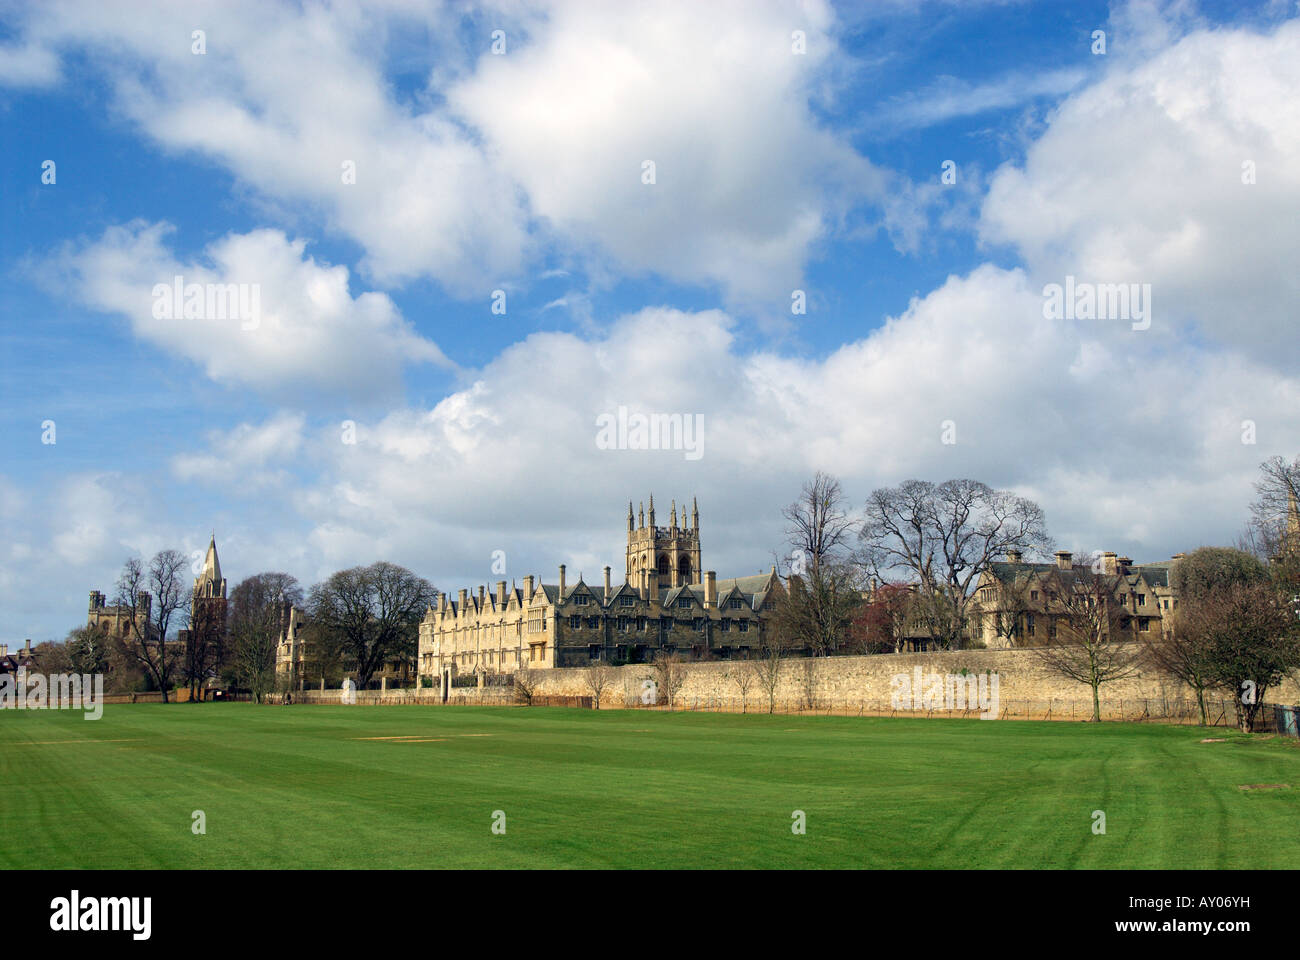 Oxford, England. Merton College with Corpus Christi College and Christ Church College in the background - Stock Image